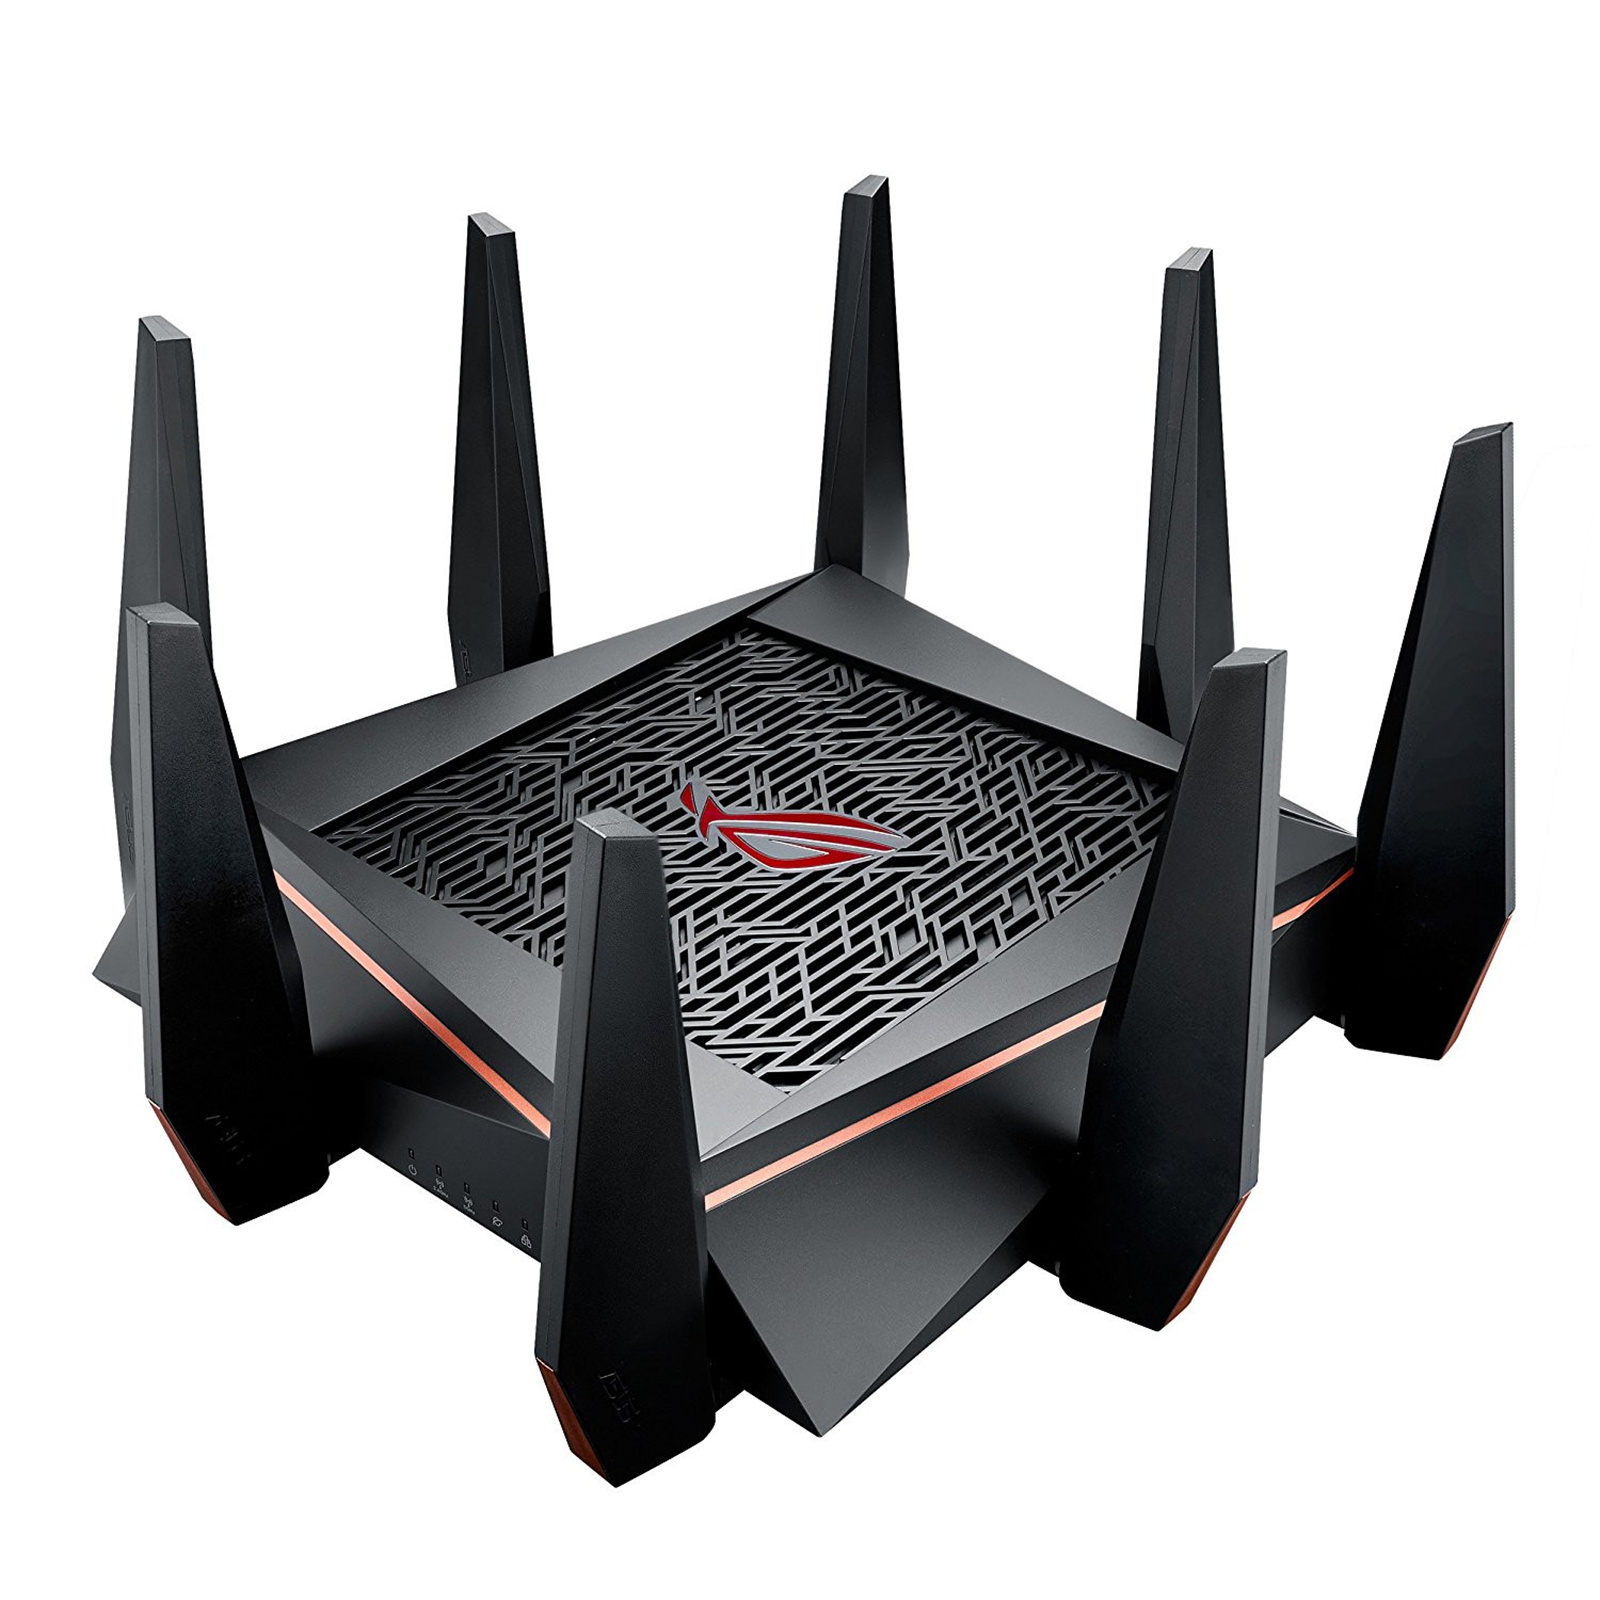 Buy the ASUS GT-AC5300 MU-MIMO Gigabit Wi-Fi Extreme Gaming Router ...